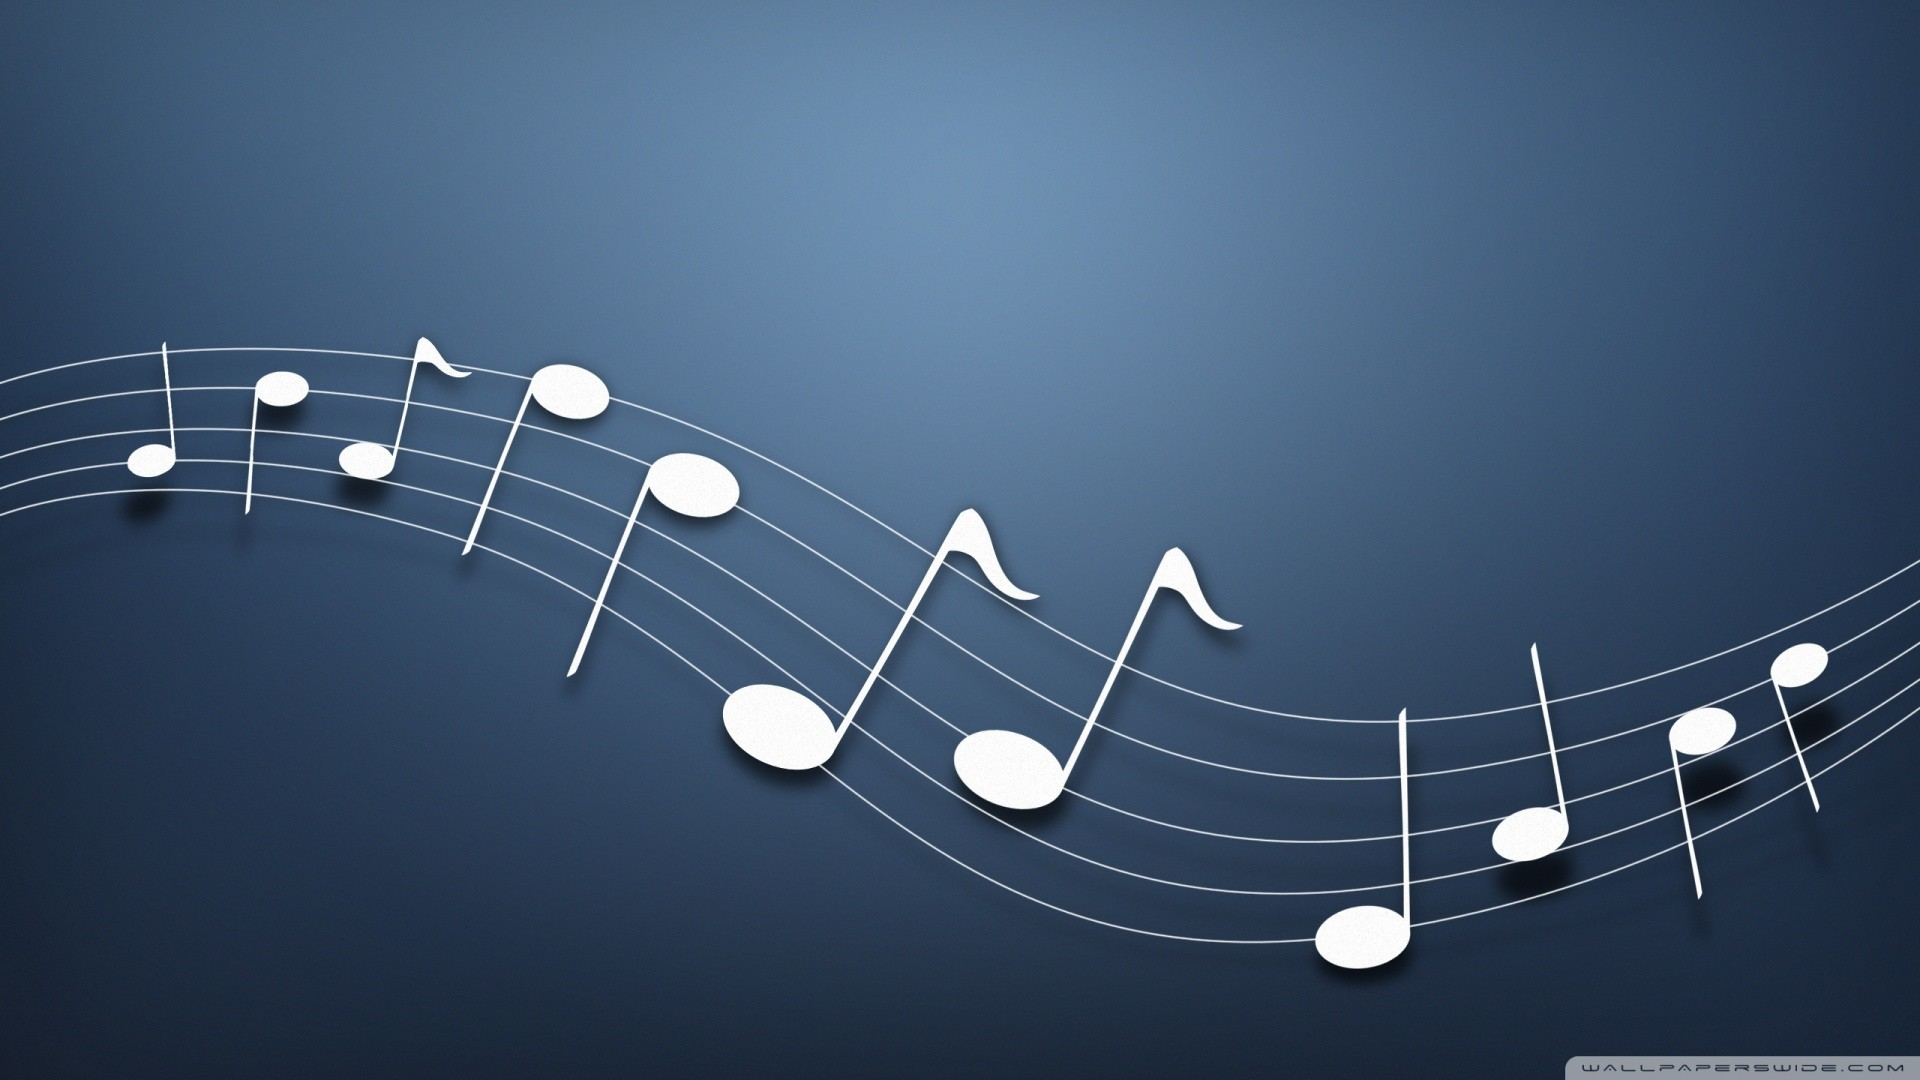 Hd Music Background Wallpapers: Music HD Wallpapers 1080p (83+ Images